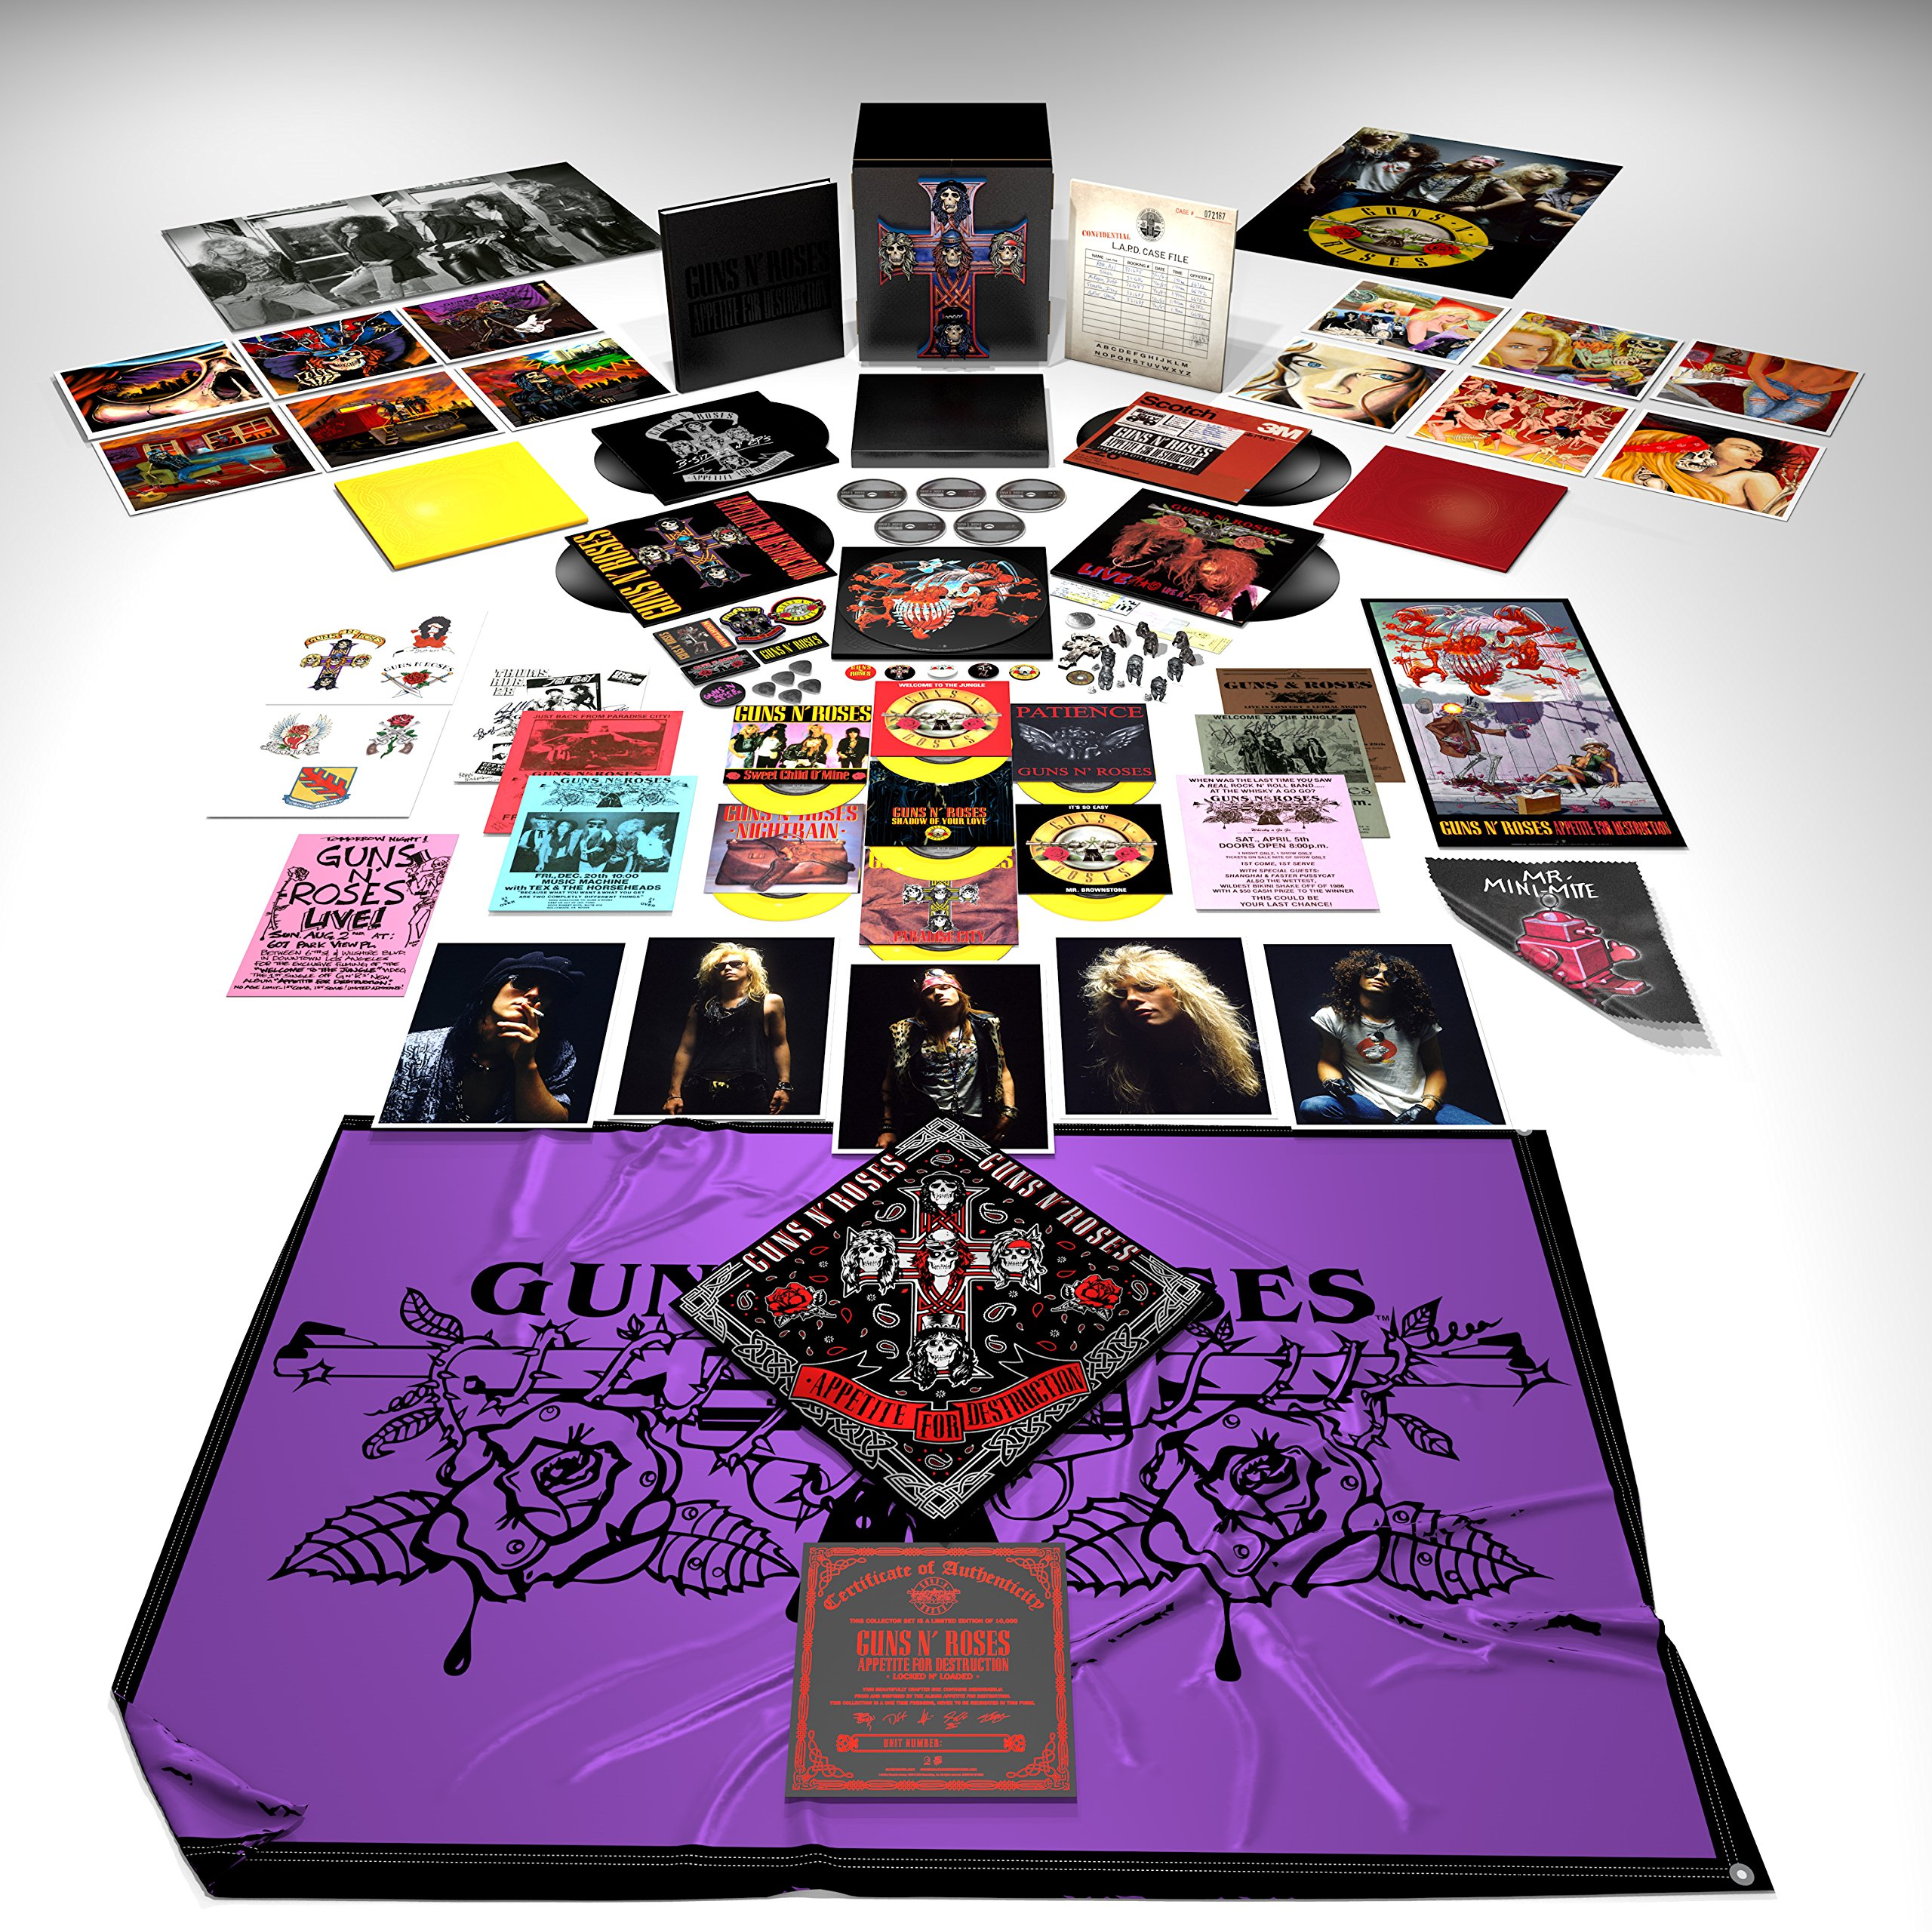 Vinilo : GUNS N ROSES - Appetite For Destruction: Locked N Loaded Box Set (18 Discos)